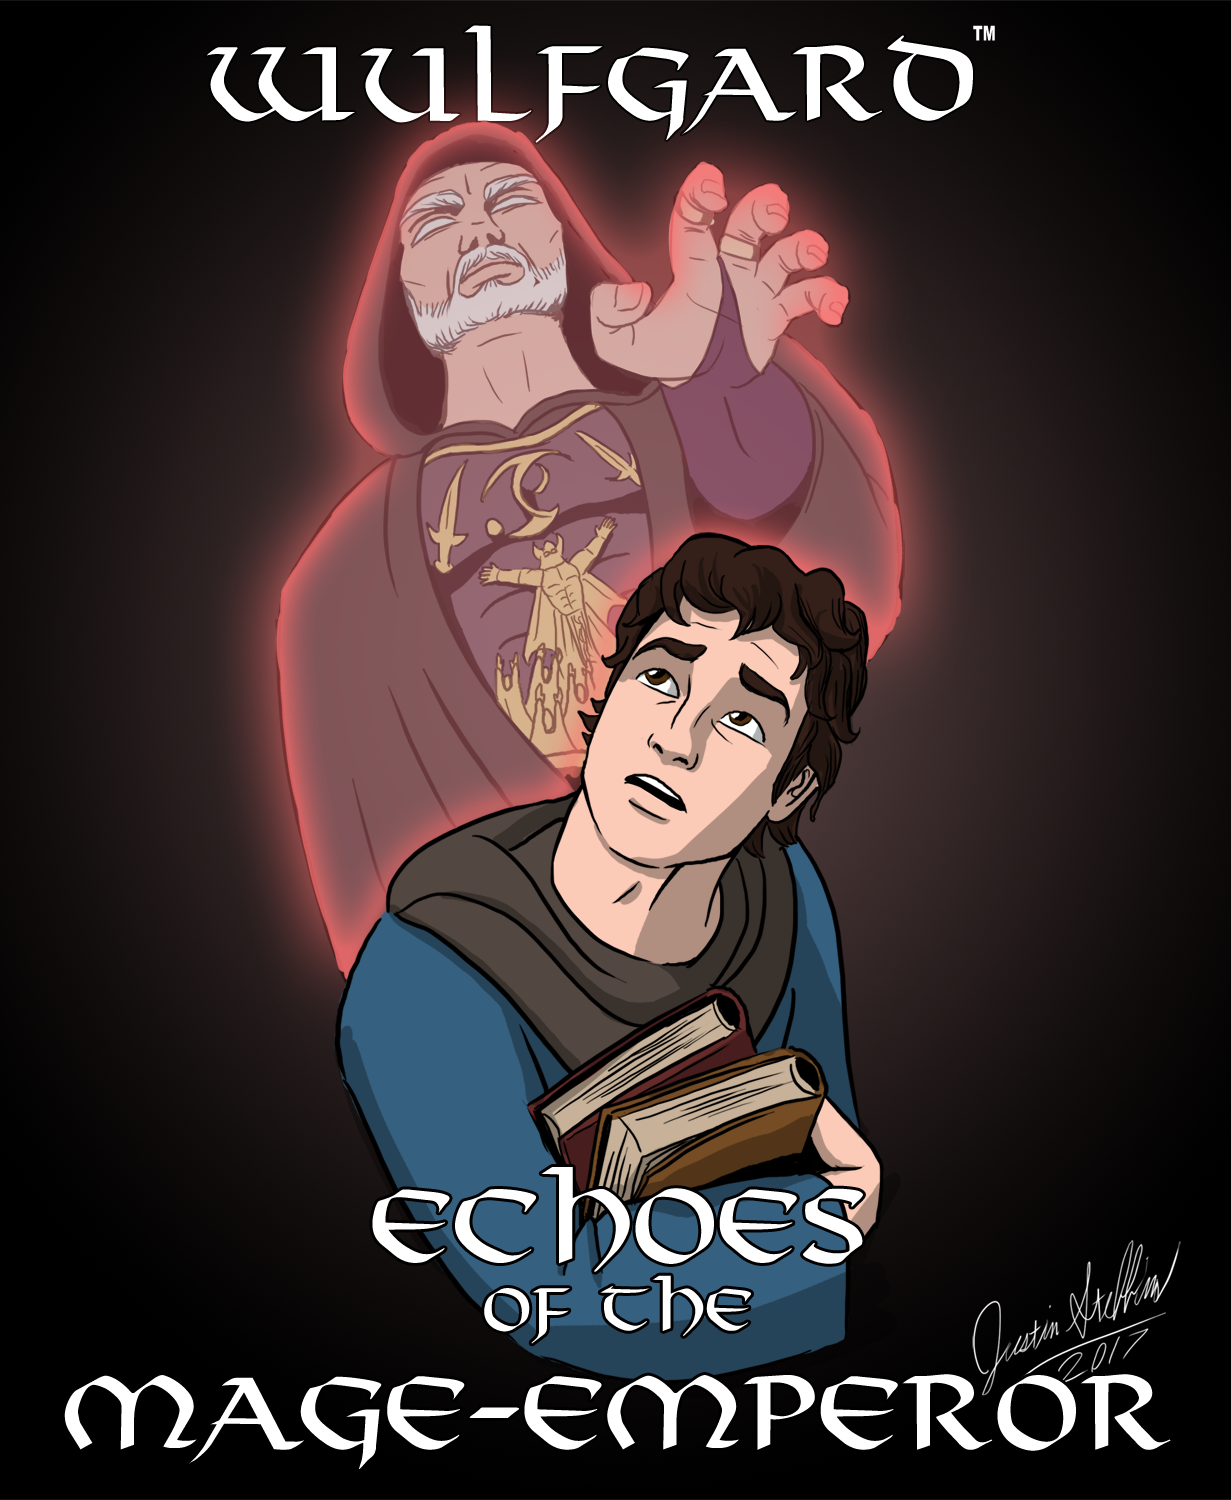 BIG update - New Echoes chapter, cover art, announcement, and updates to artwork sections